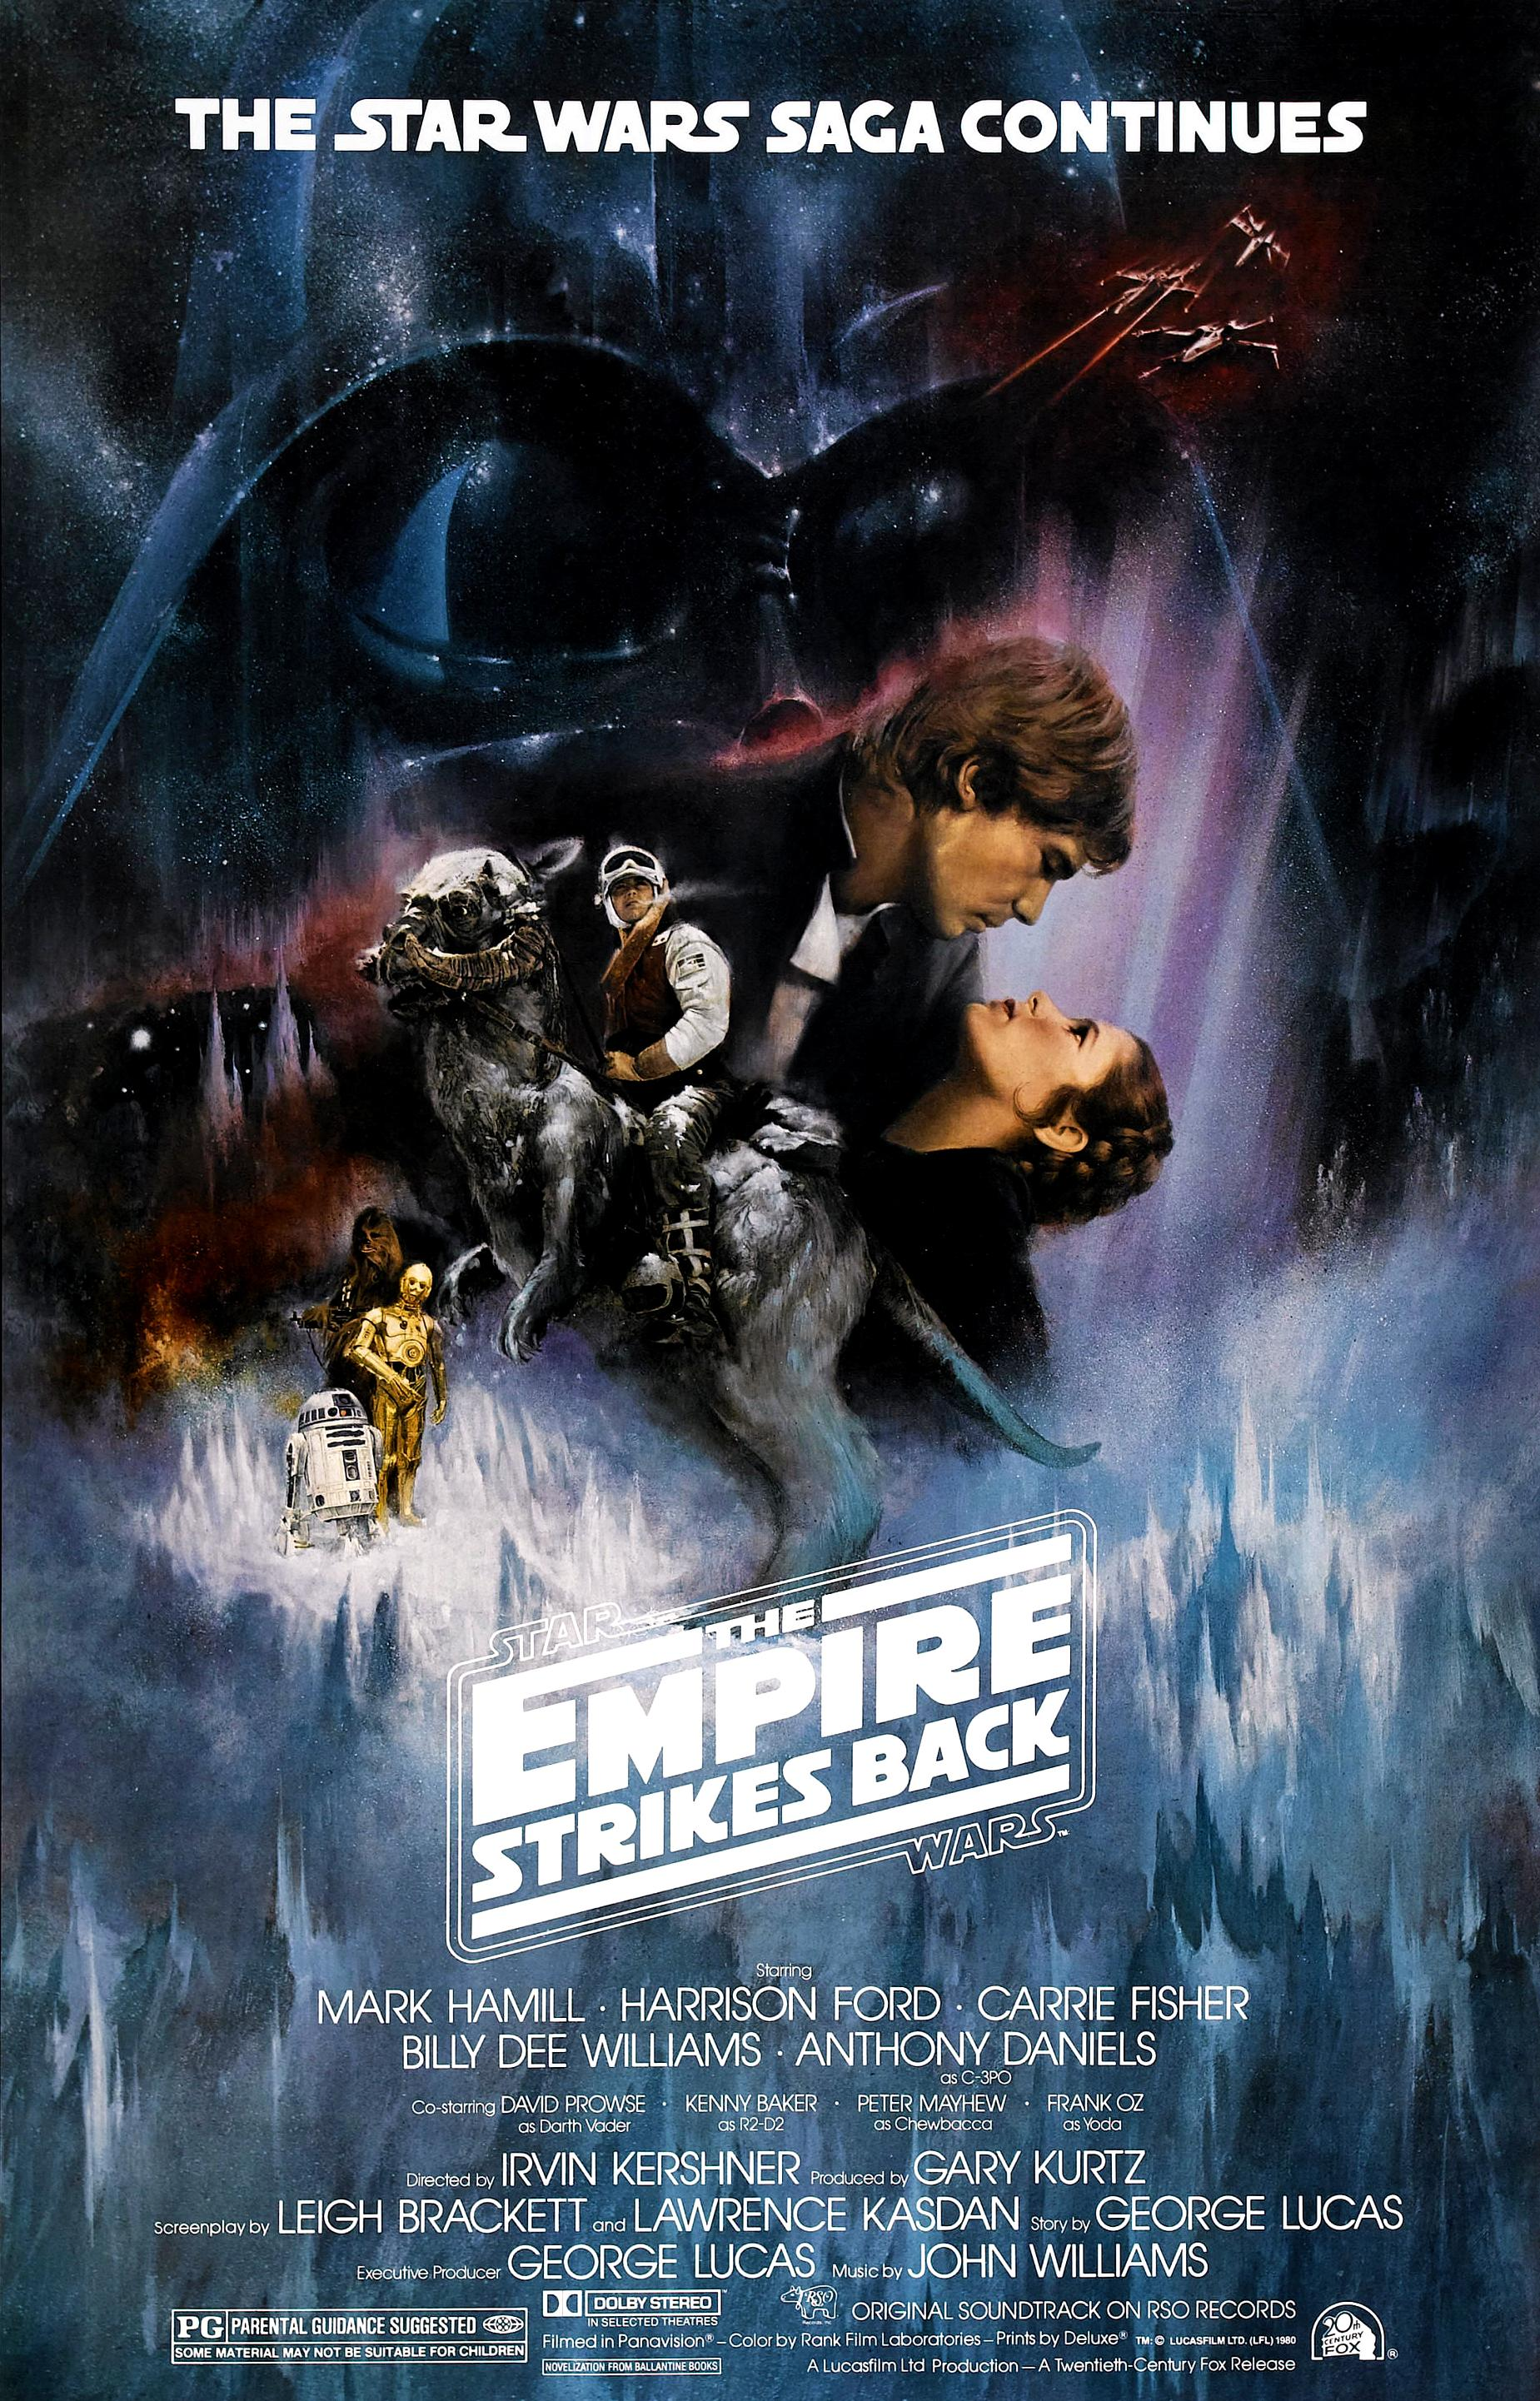 star wars episode 3 full movie in hindi download 480p